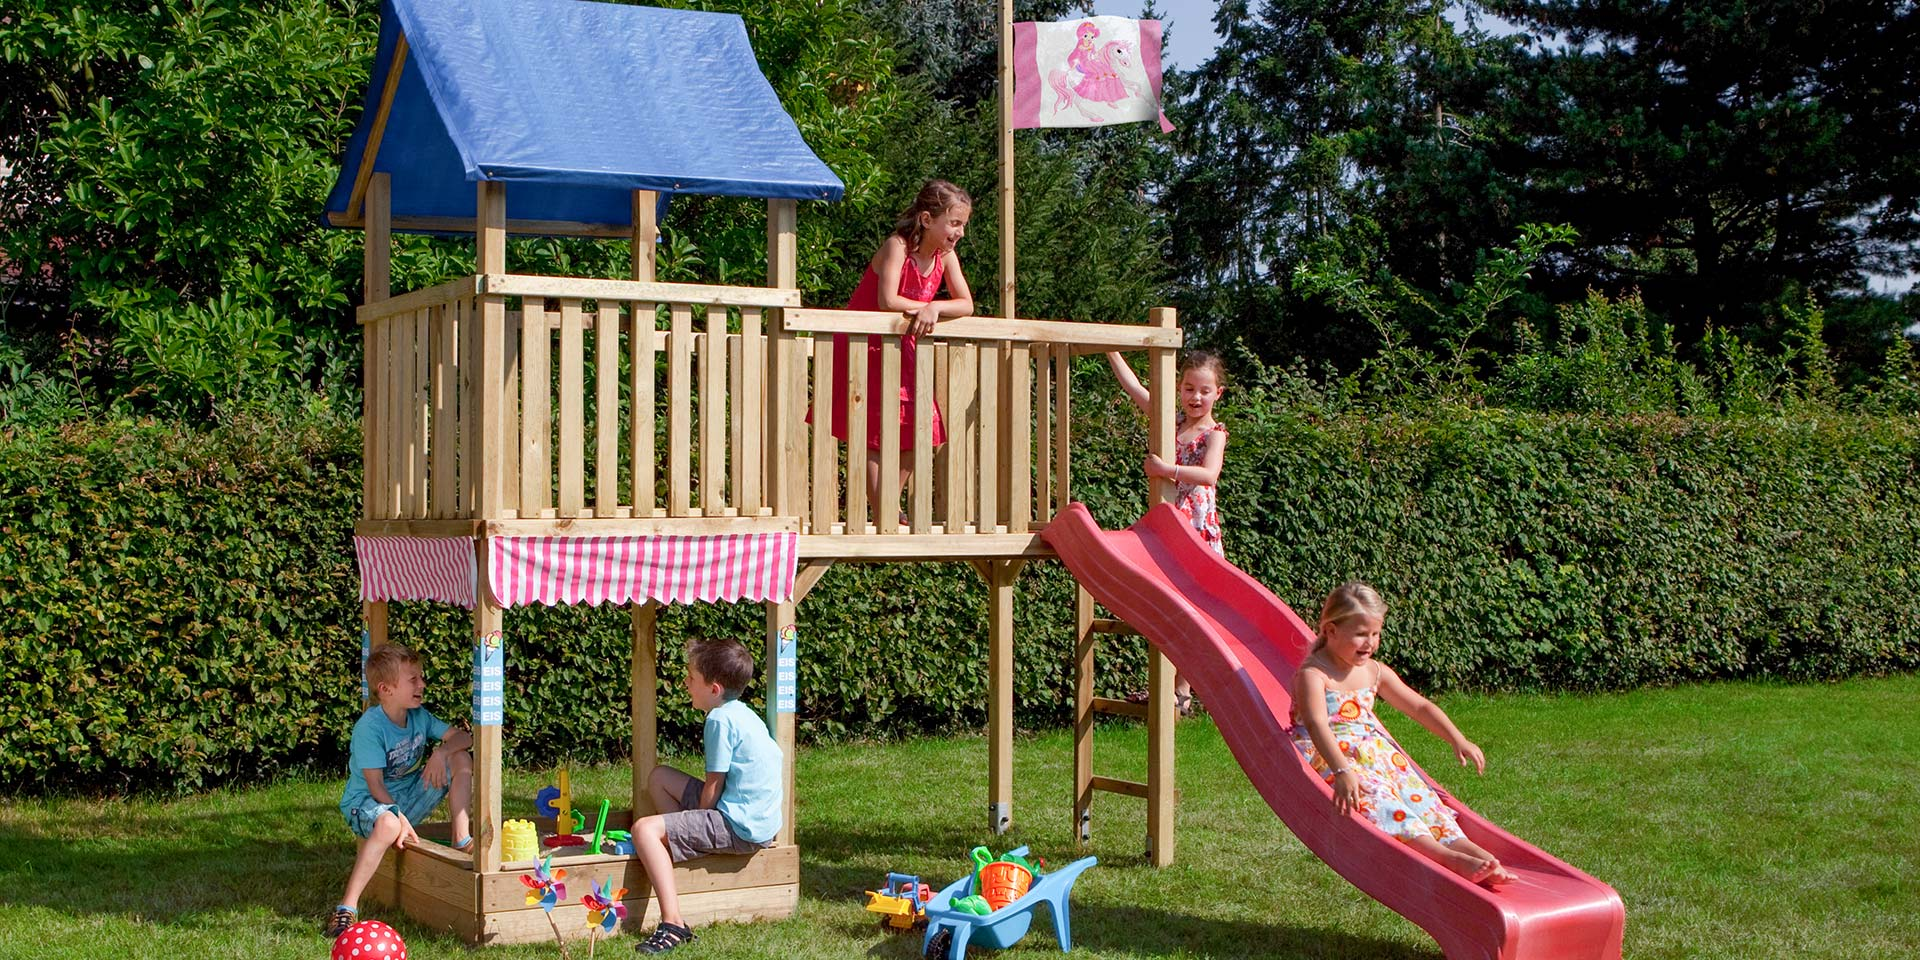 spielger te im garten holzland k ster bei hildesheim. Black Bedroom Furniture Sets. Home Design Ideas